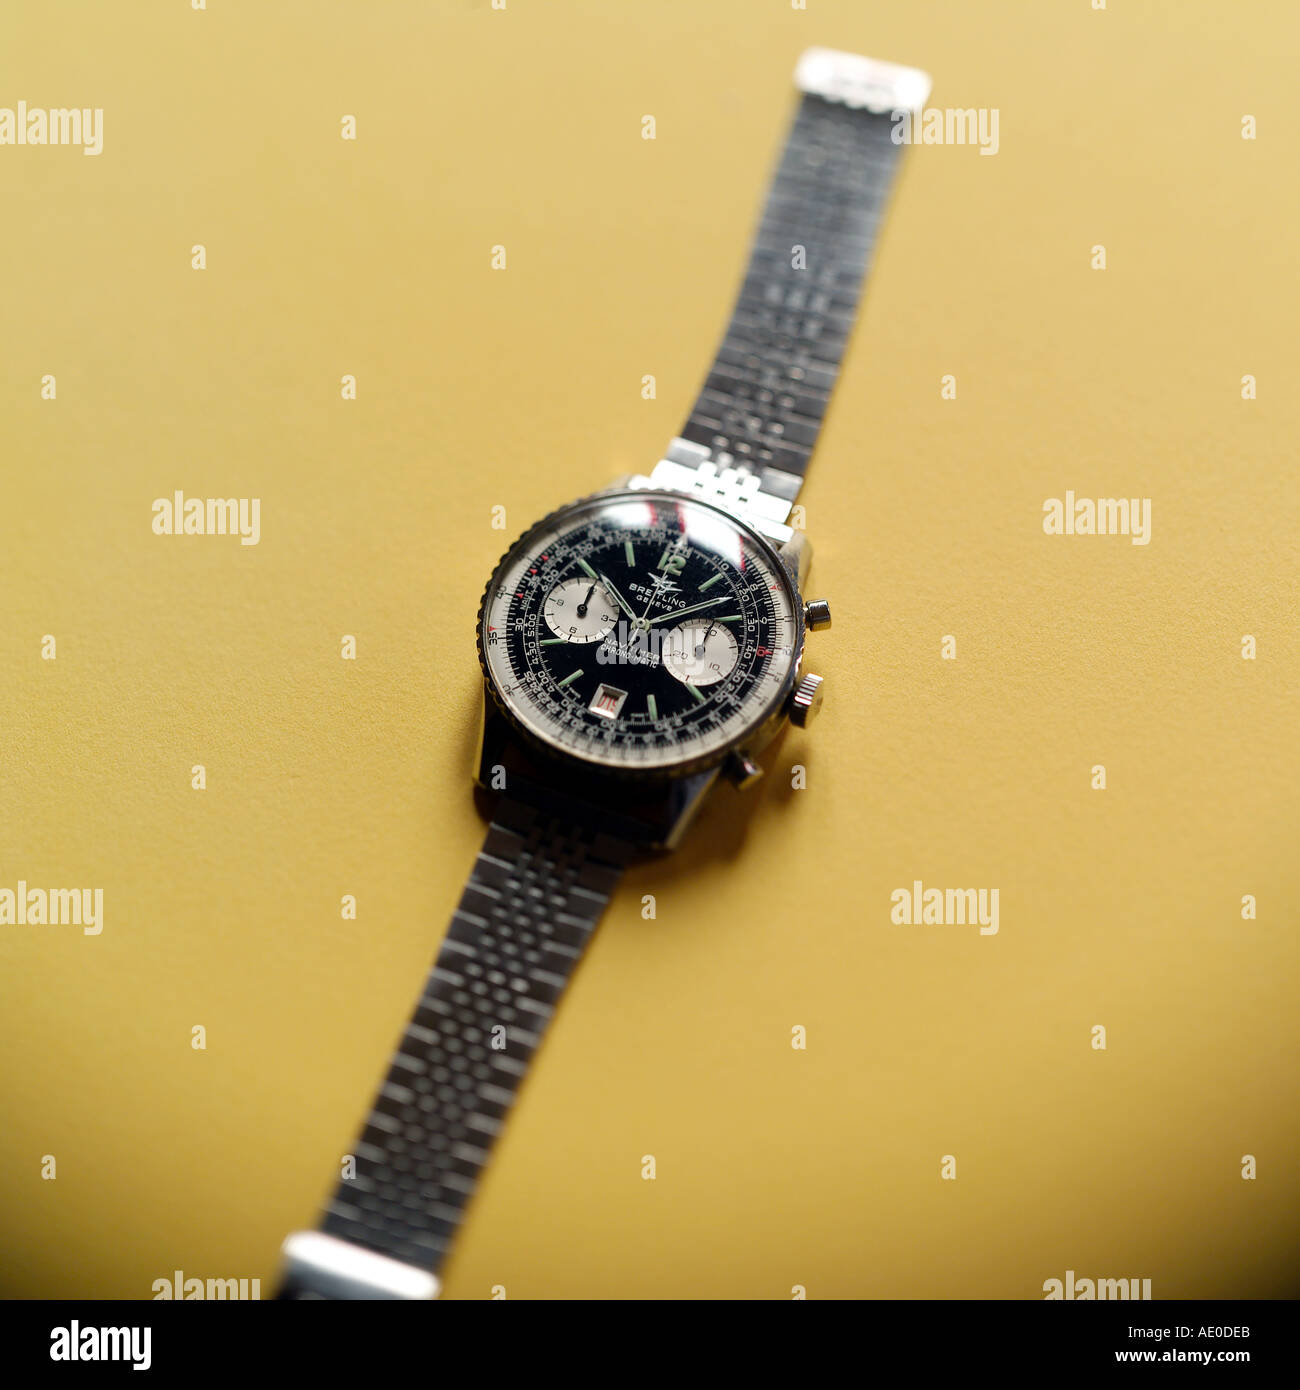 BREITLING SWISS CHRONOGRAPH WRIST WATCH WITH SELECTIVE FOCUS ON YELLOW BACKGROUND - Stock Image